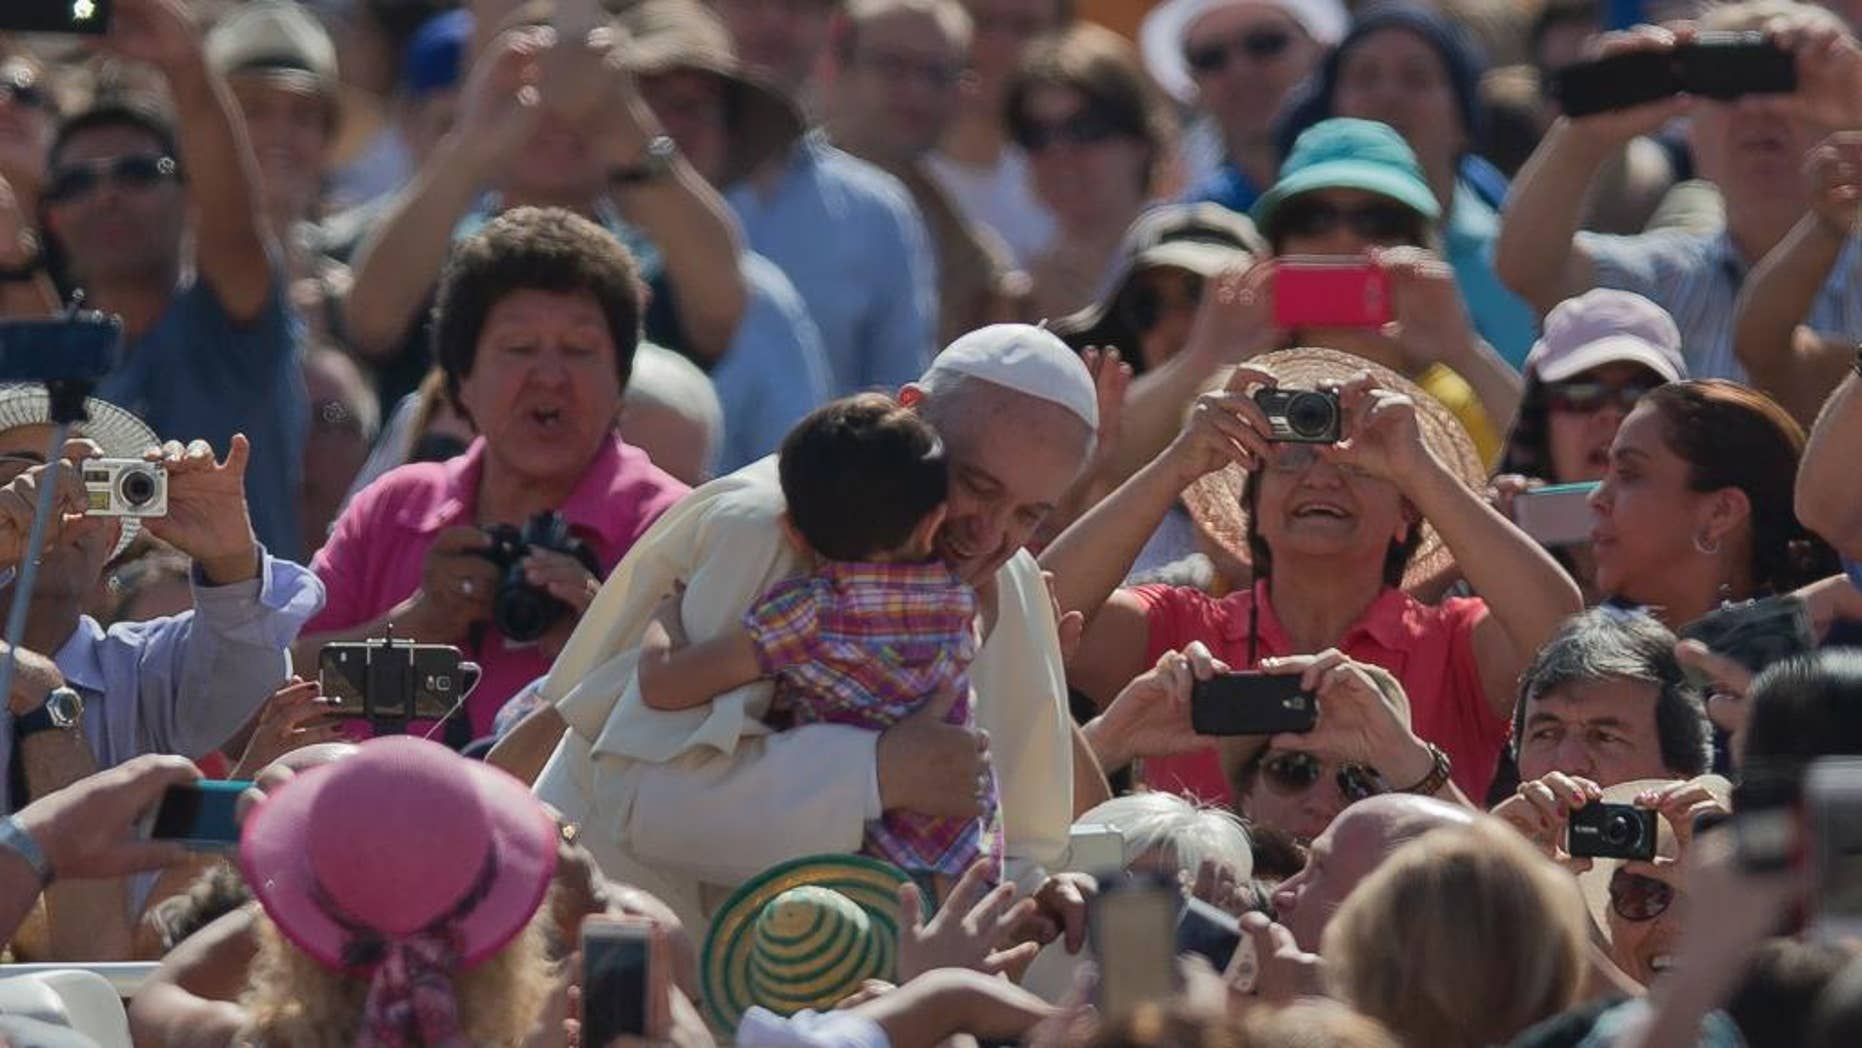 Pope Francis Pope Francis hugs a child as he arrives for his weekly general audience in St. Peter's Square at the Vatican, Wednesday, May 13, 2015. (AP Photo/Alessandra Tarantino)